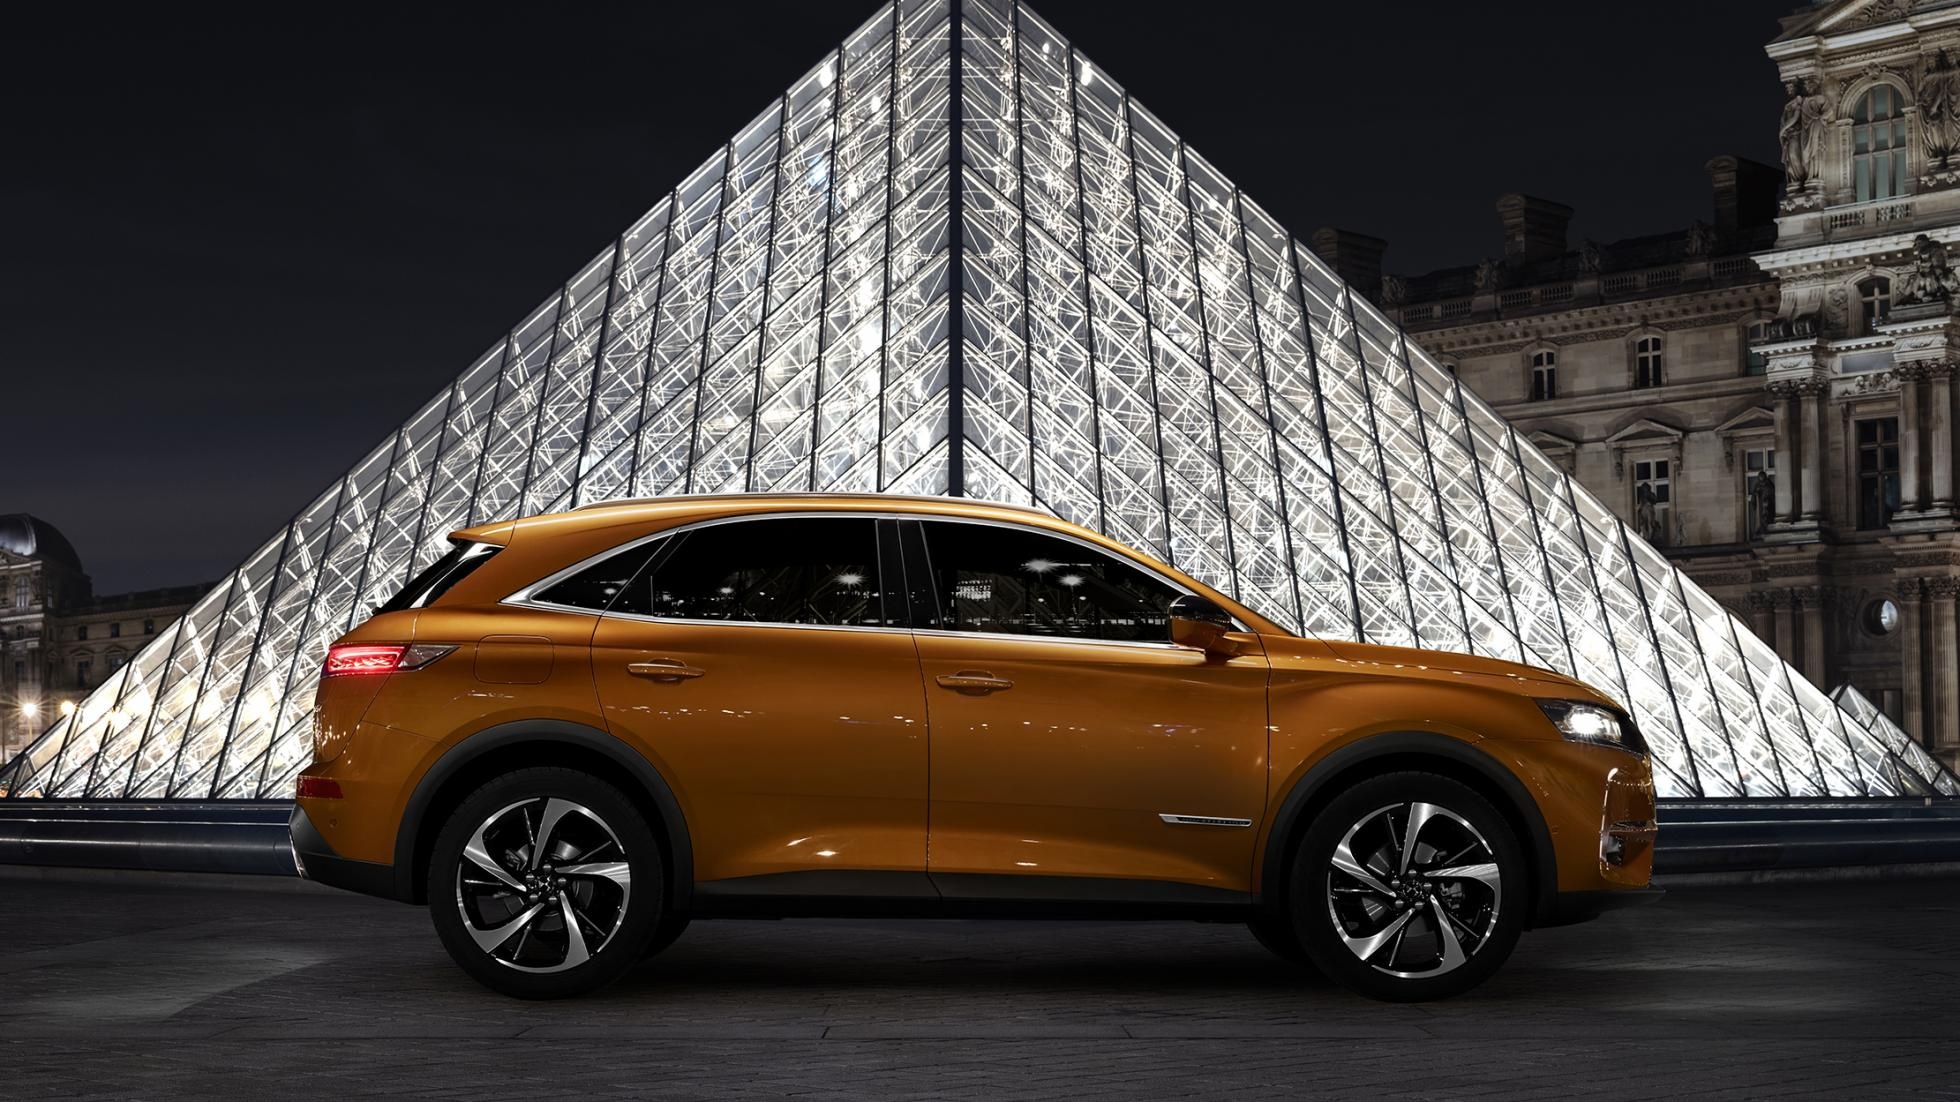 2017 DS7 Crossback